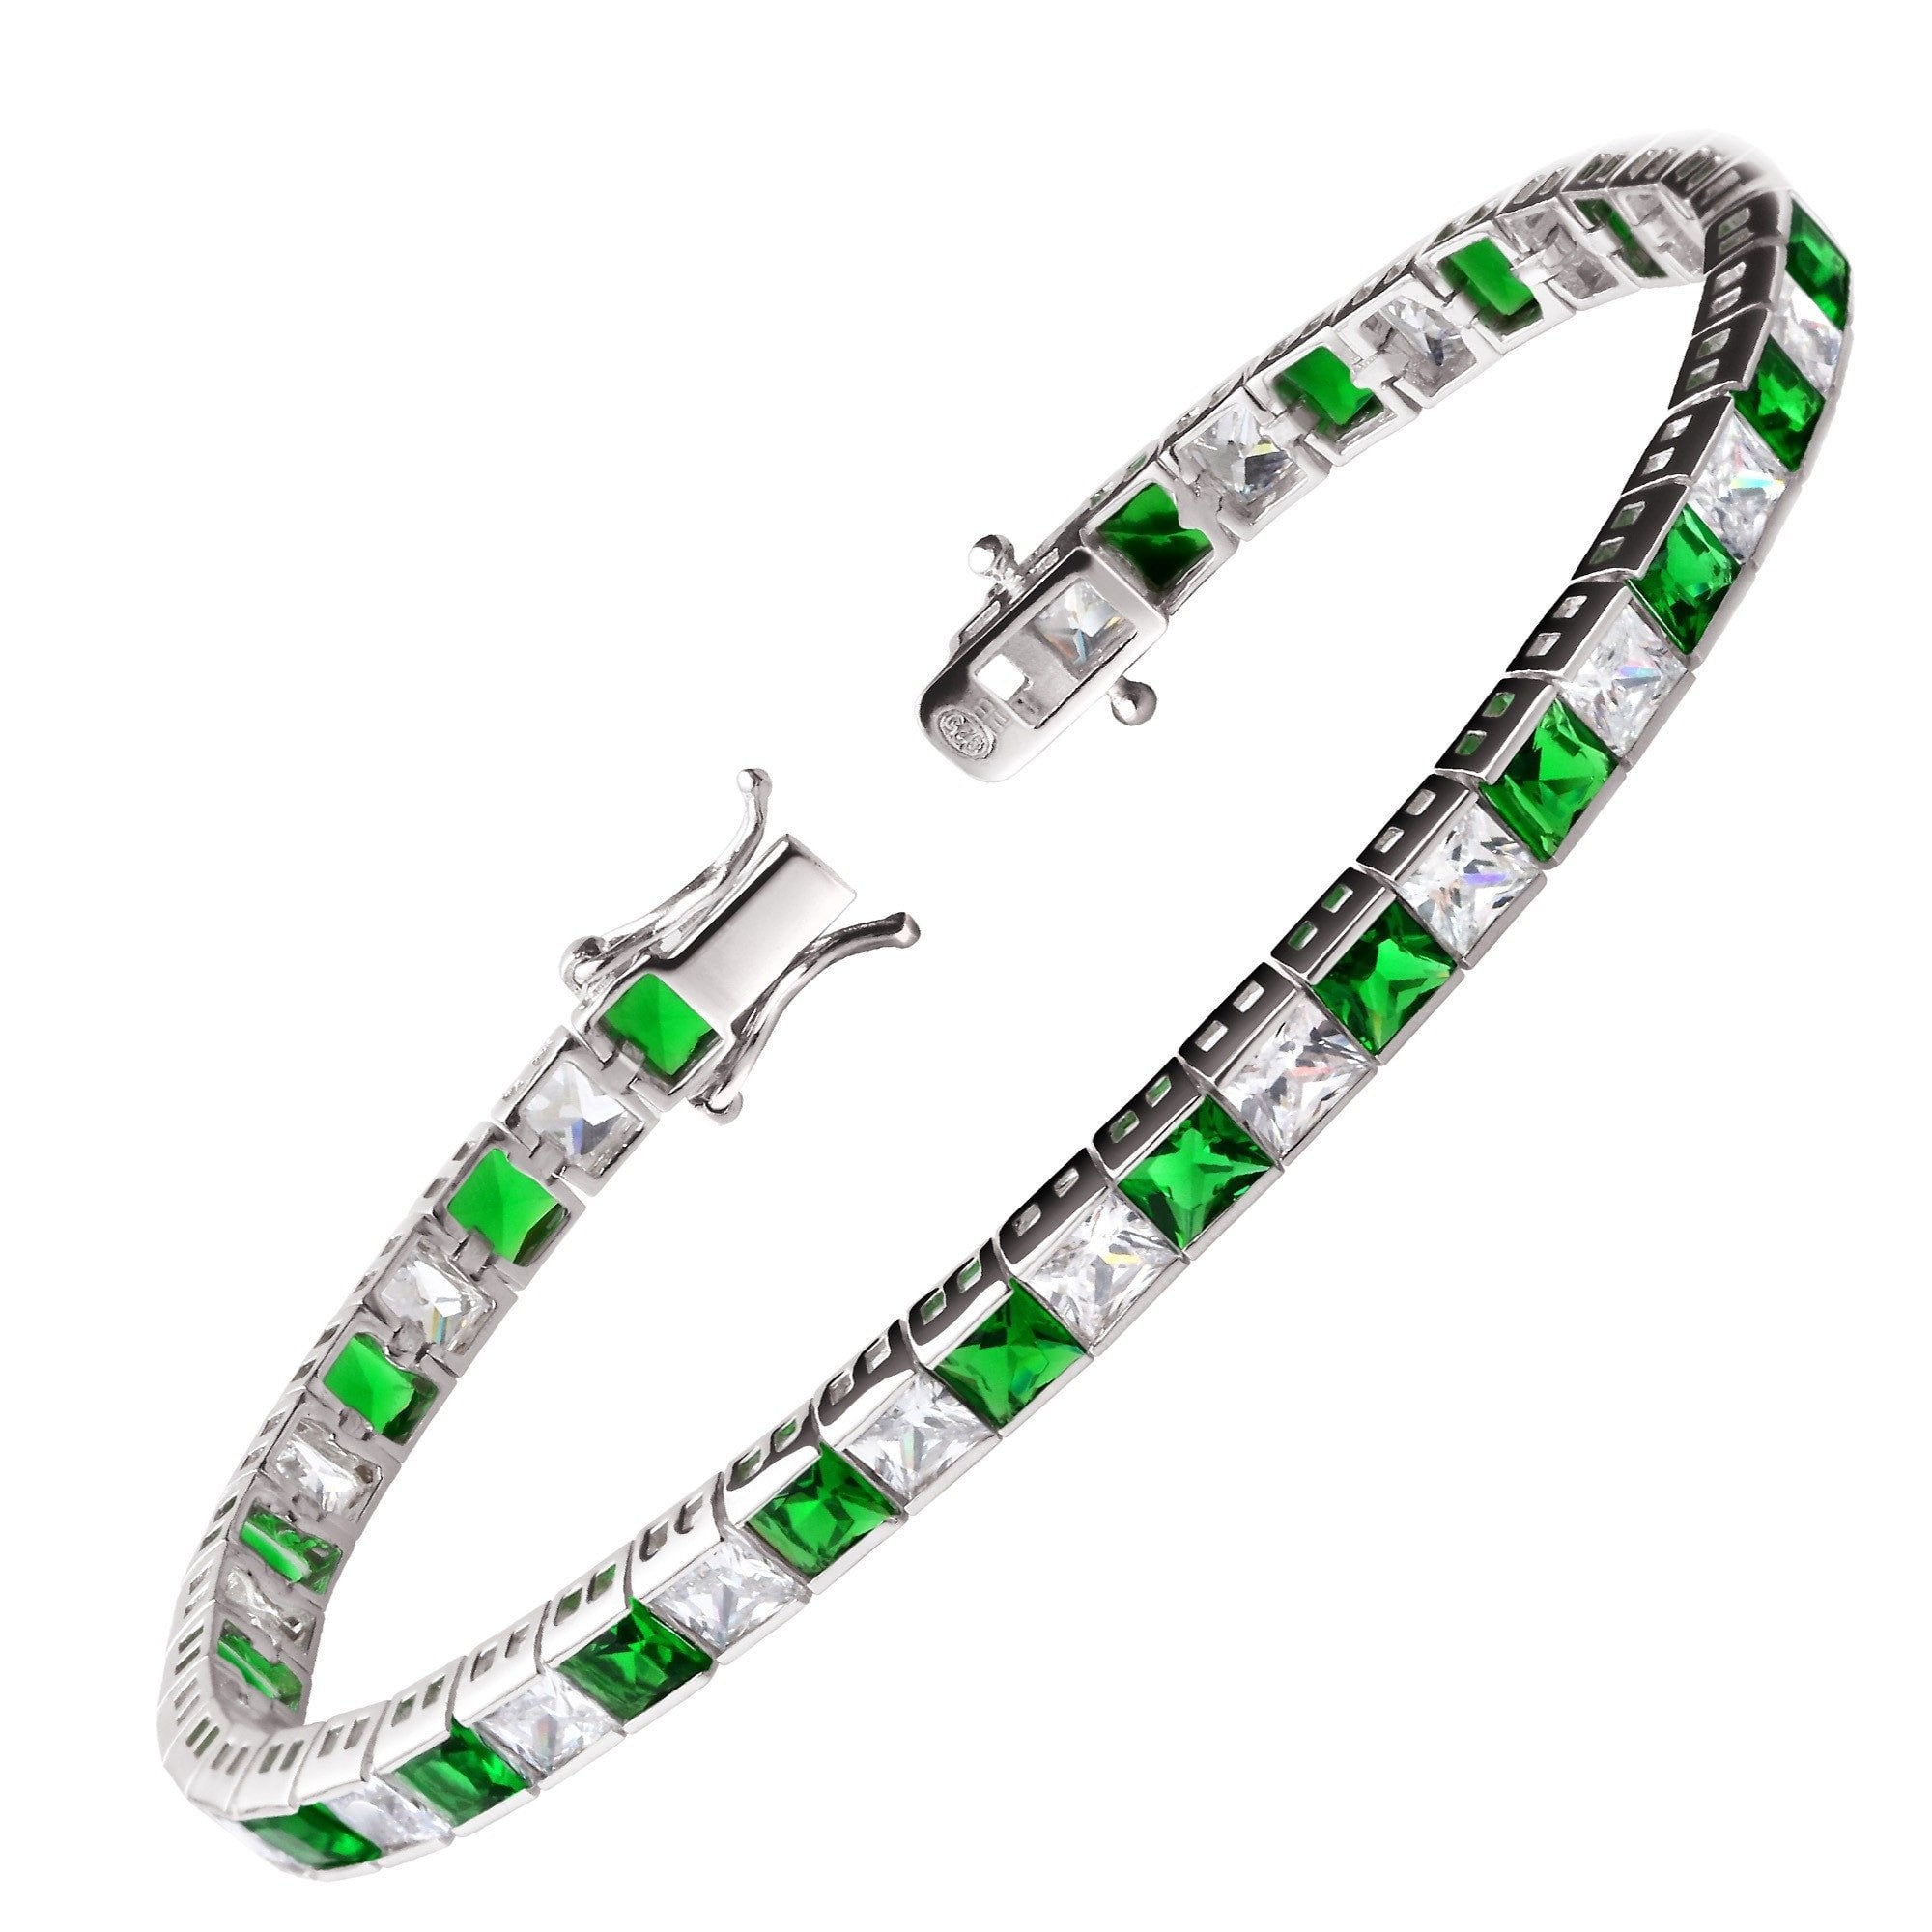 sale diamond jewelry id bracelet more harry winston master emerald j bracelets at for